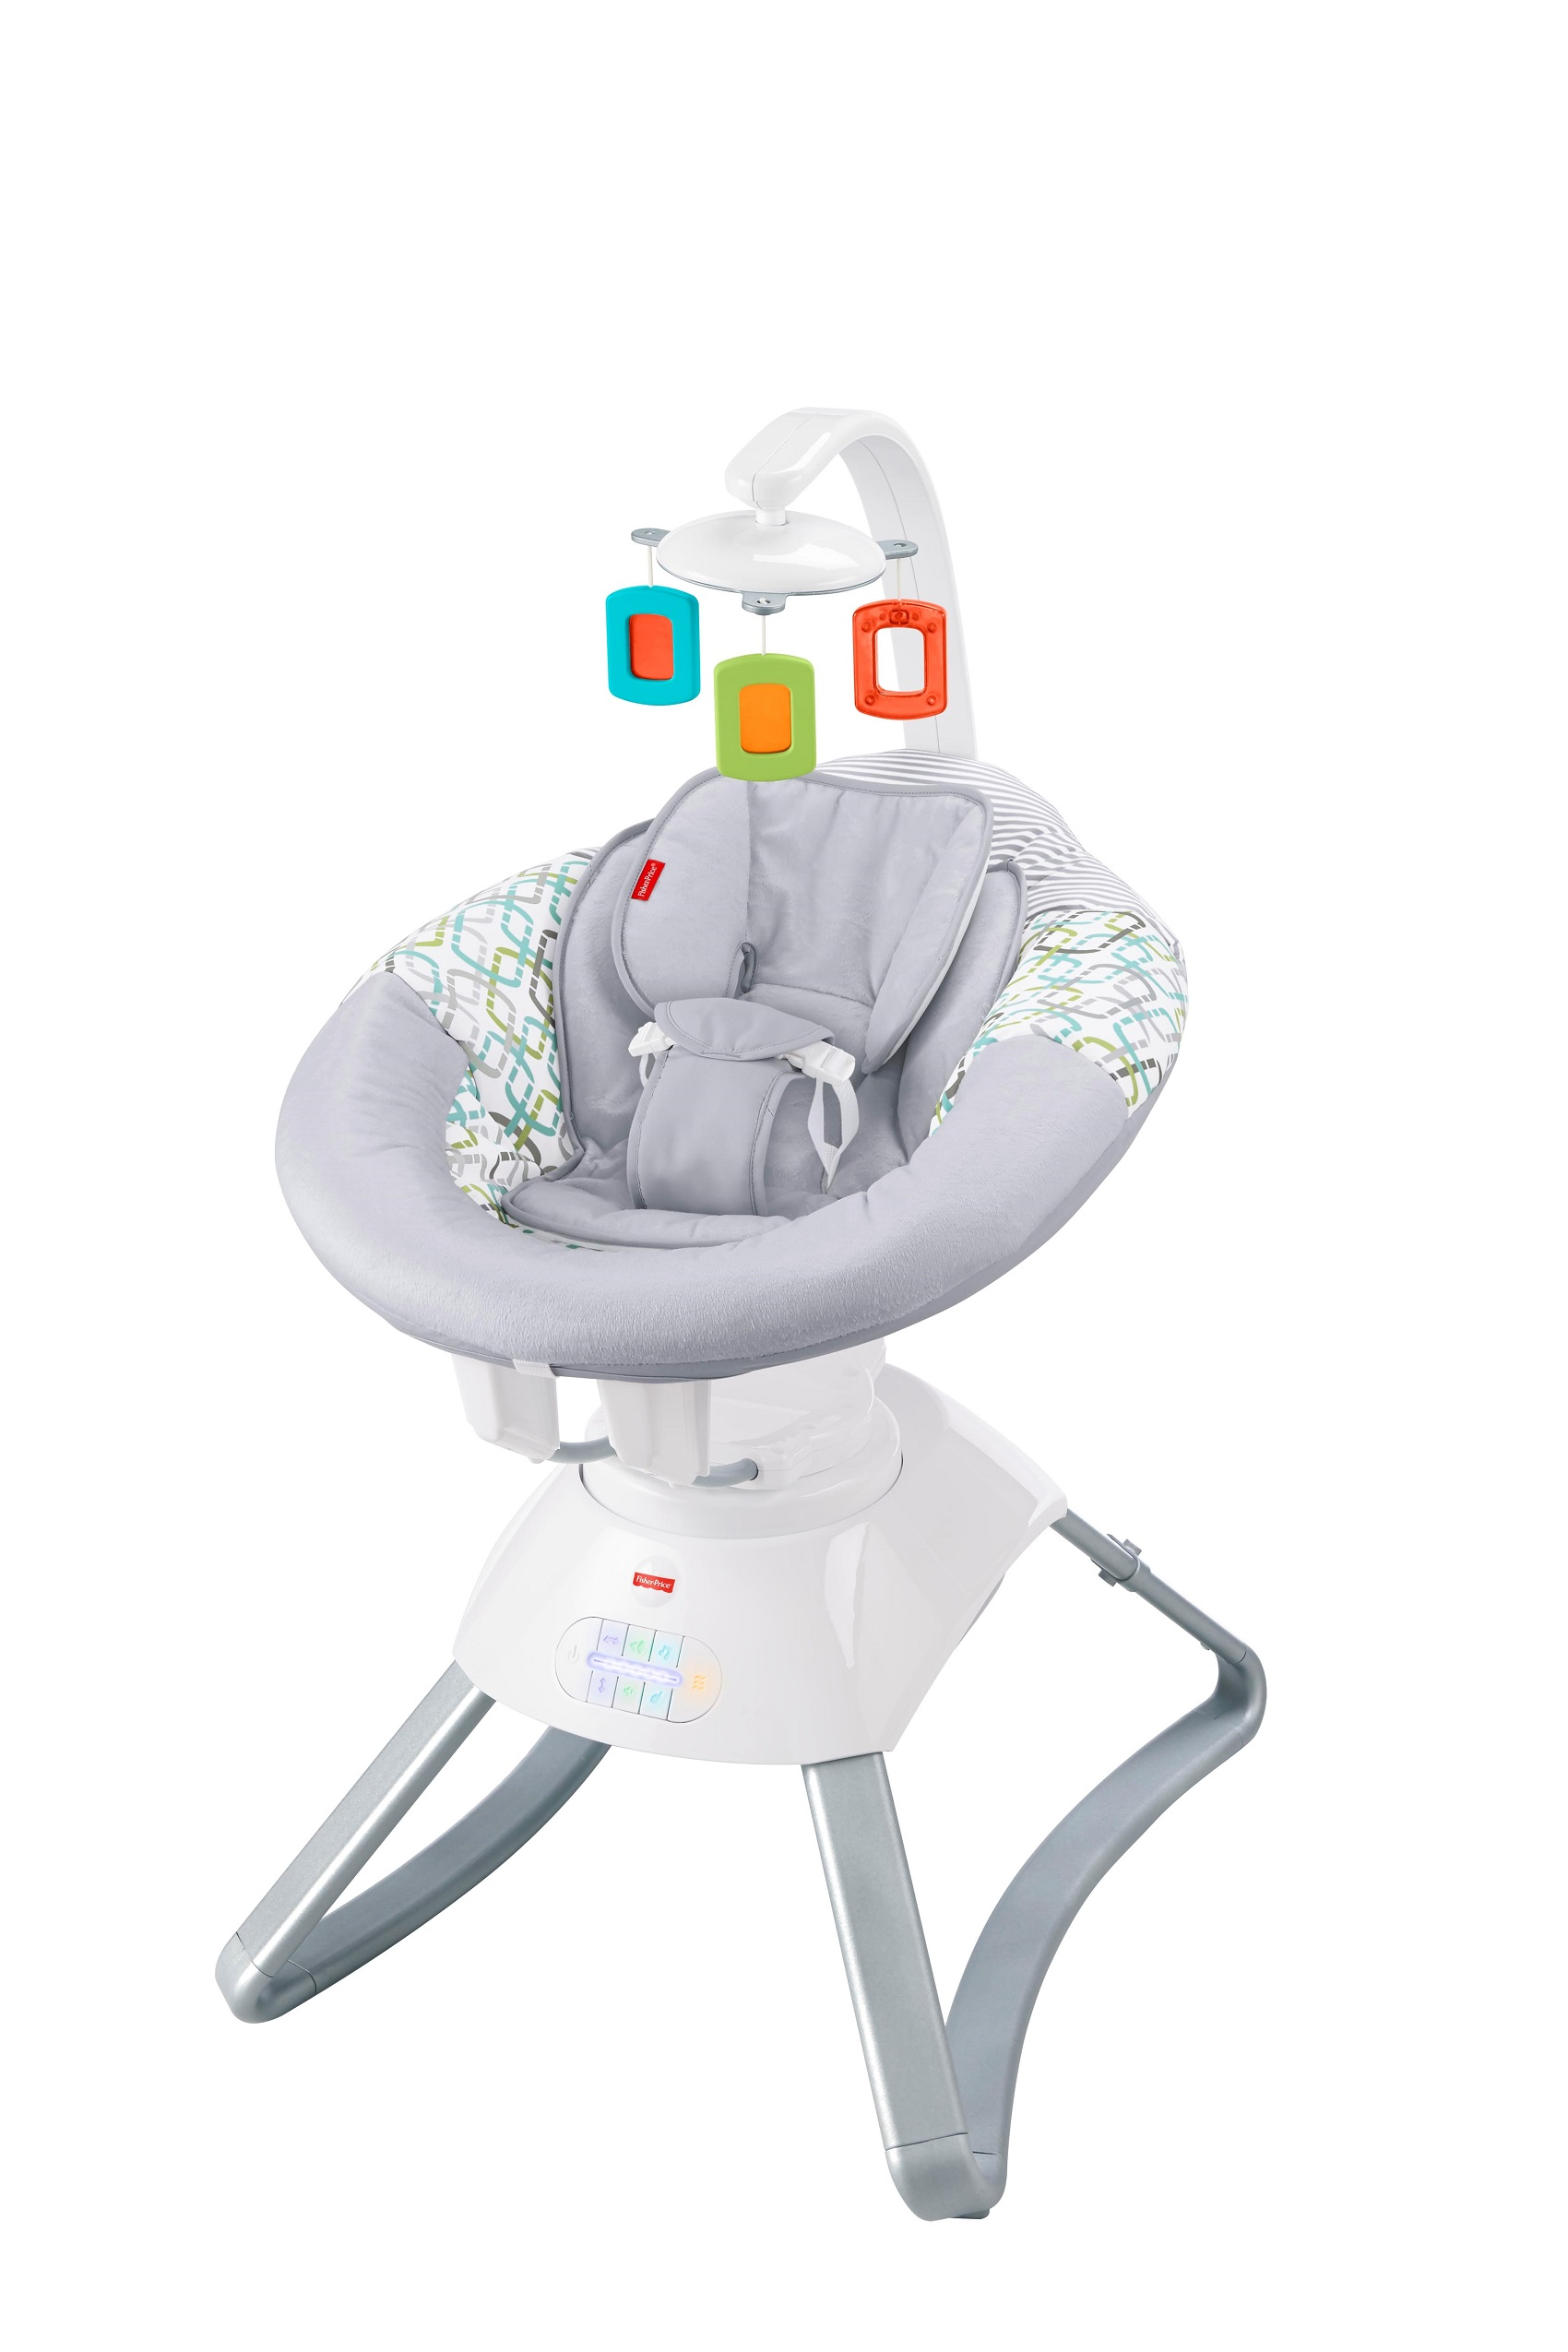 Mattel and Fisher-Price Consumer Relations Support Center